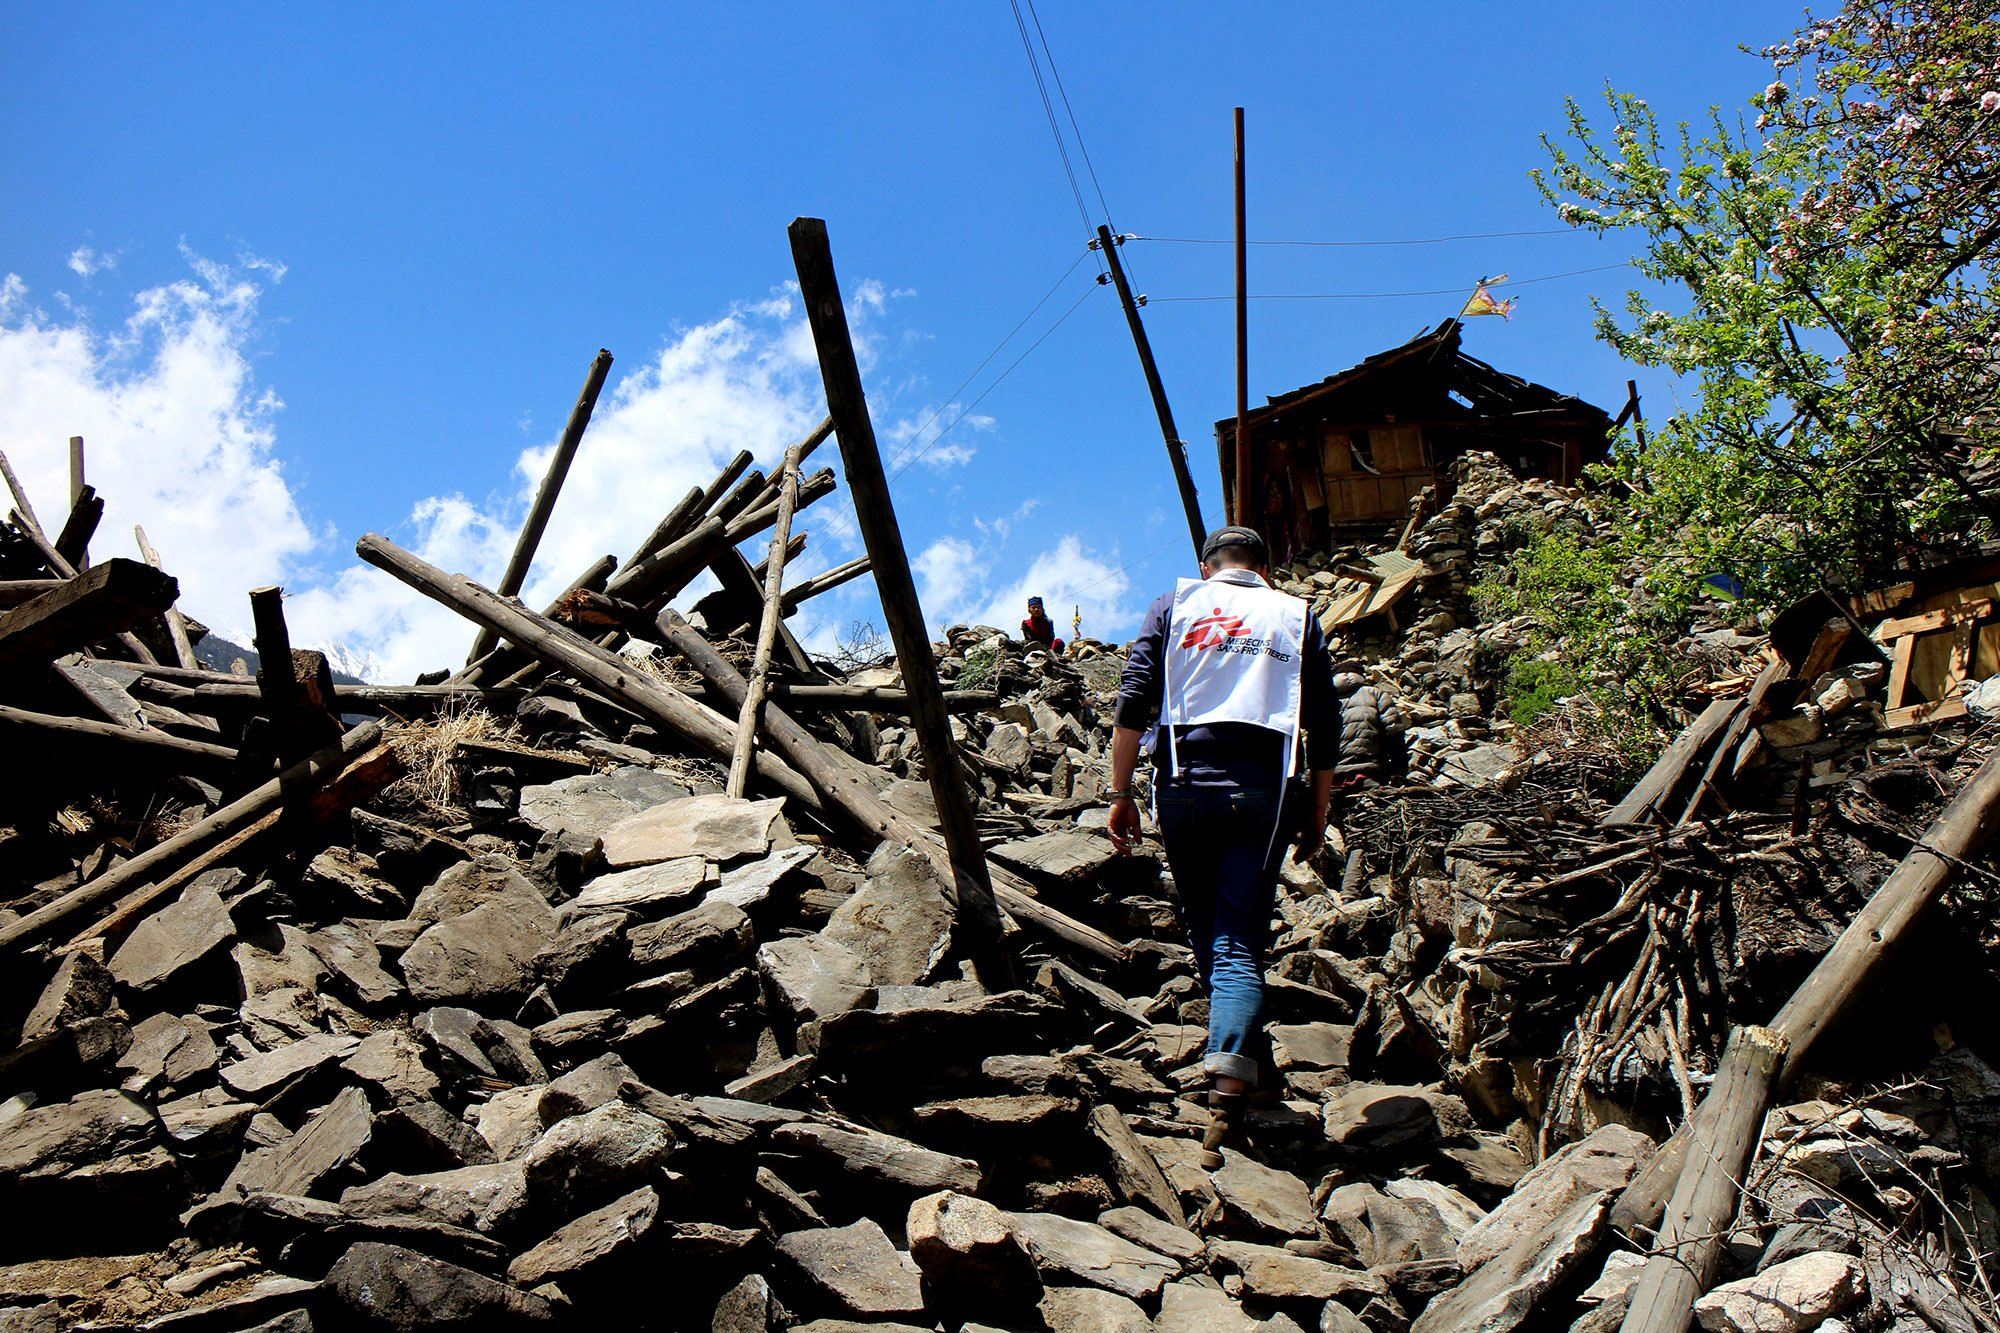 The new priority is to save lives by providing immediate aid to the most affected people, including Dolakha itself (epicentre). Photo: Corinne Baker/MSF